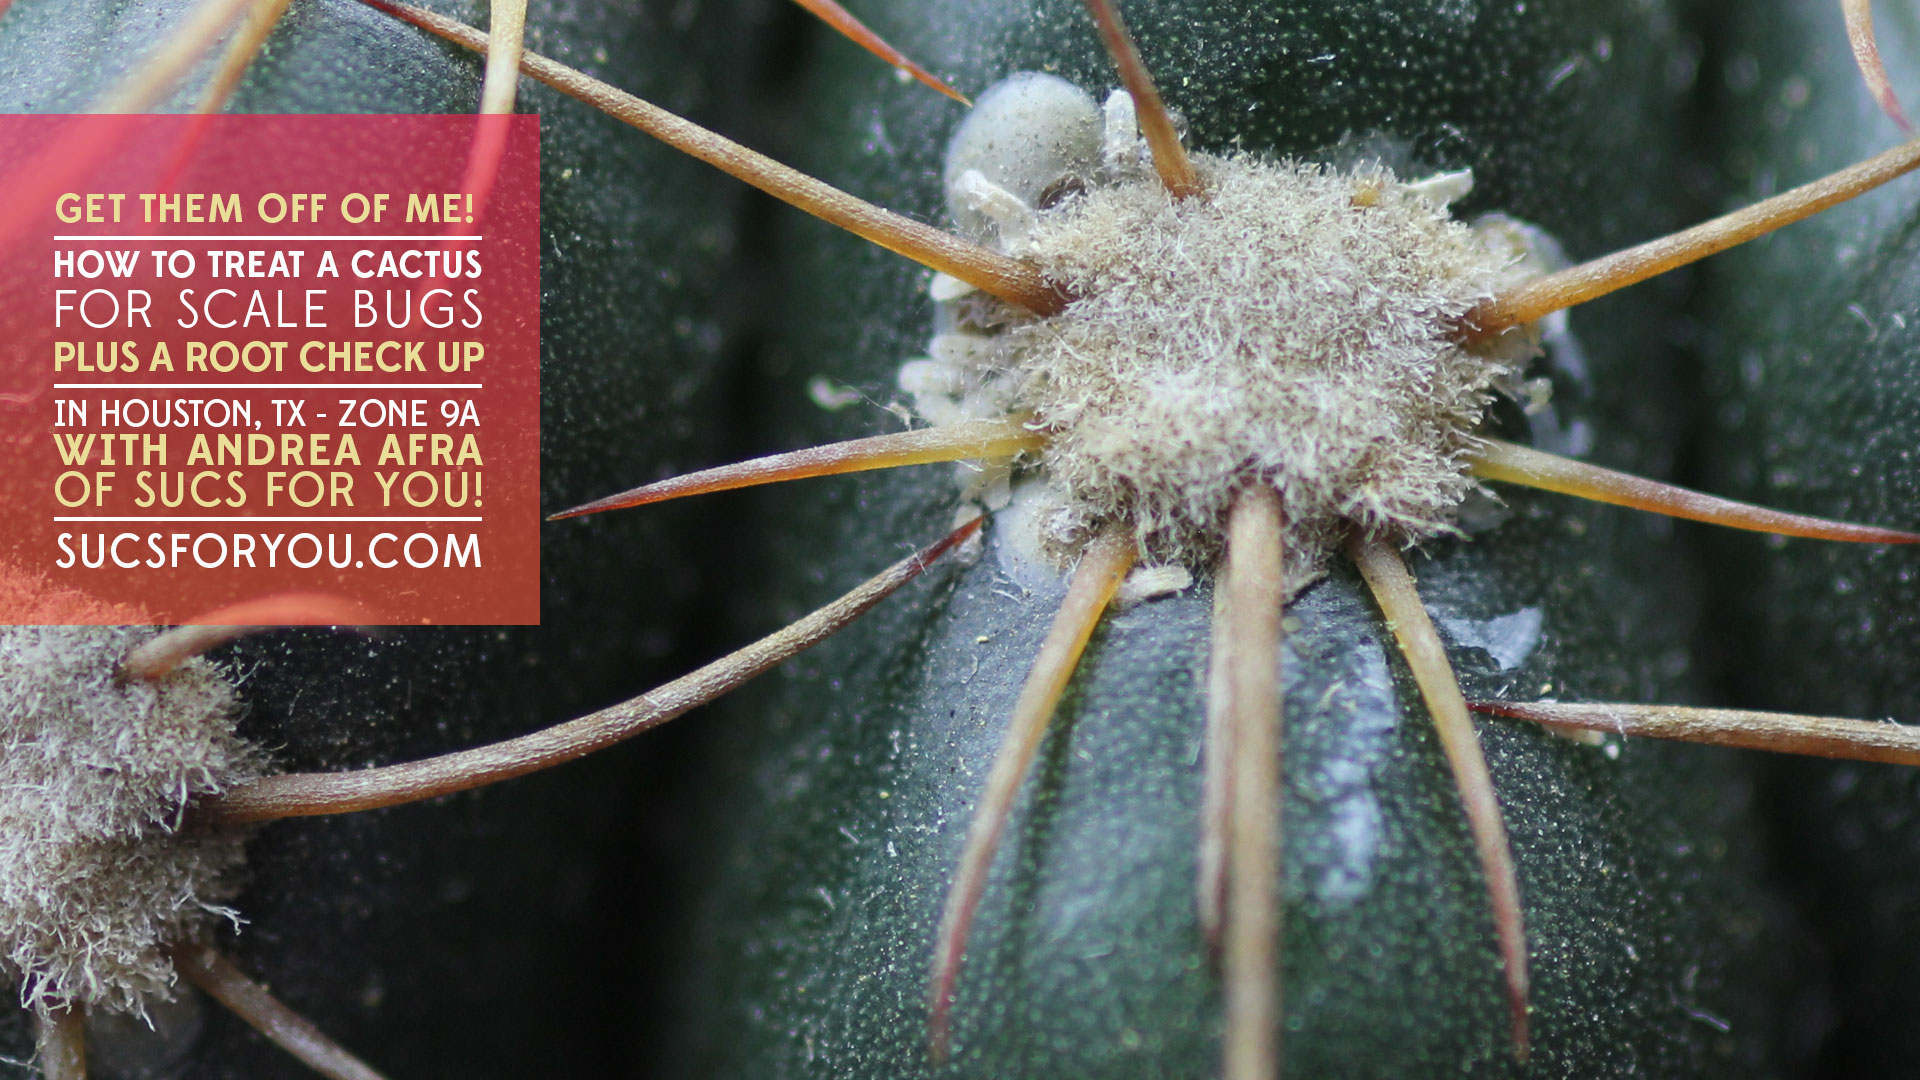 How to treat a cactus for scale